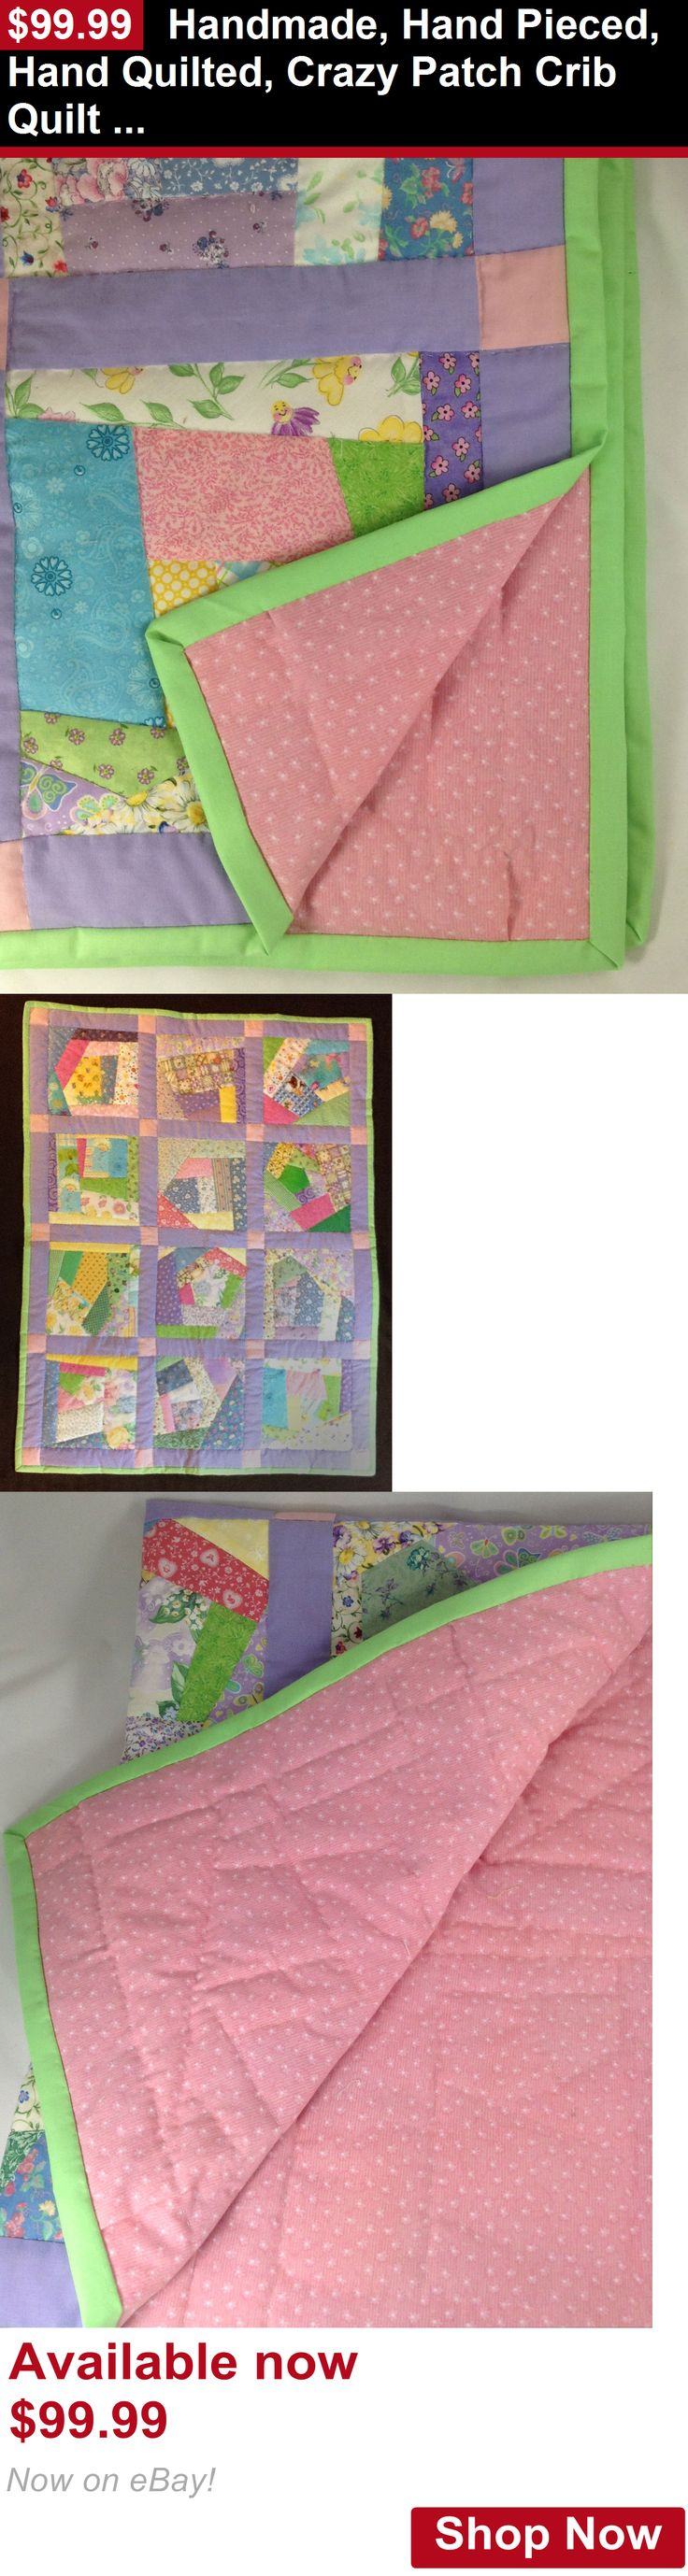 Quilts And Coverlets: Handmade, Hand Pieced, Hand Quilted, Crazy Patch Crib Quilt / Comforter On Sale BUY IT NOW ONLY: $99.99